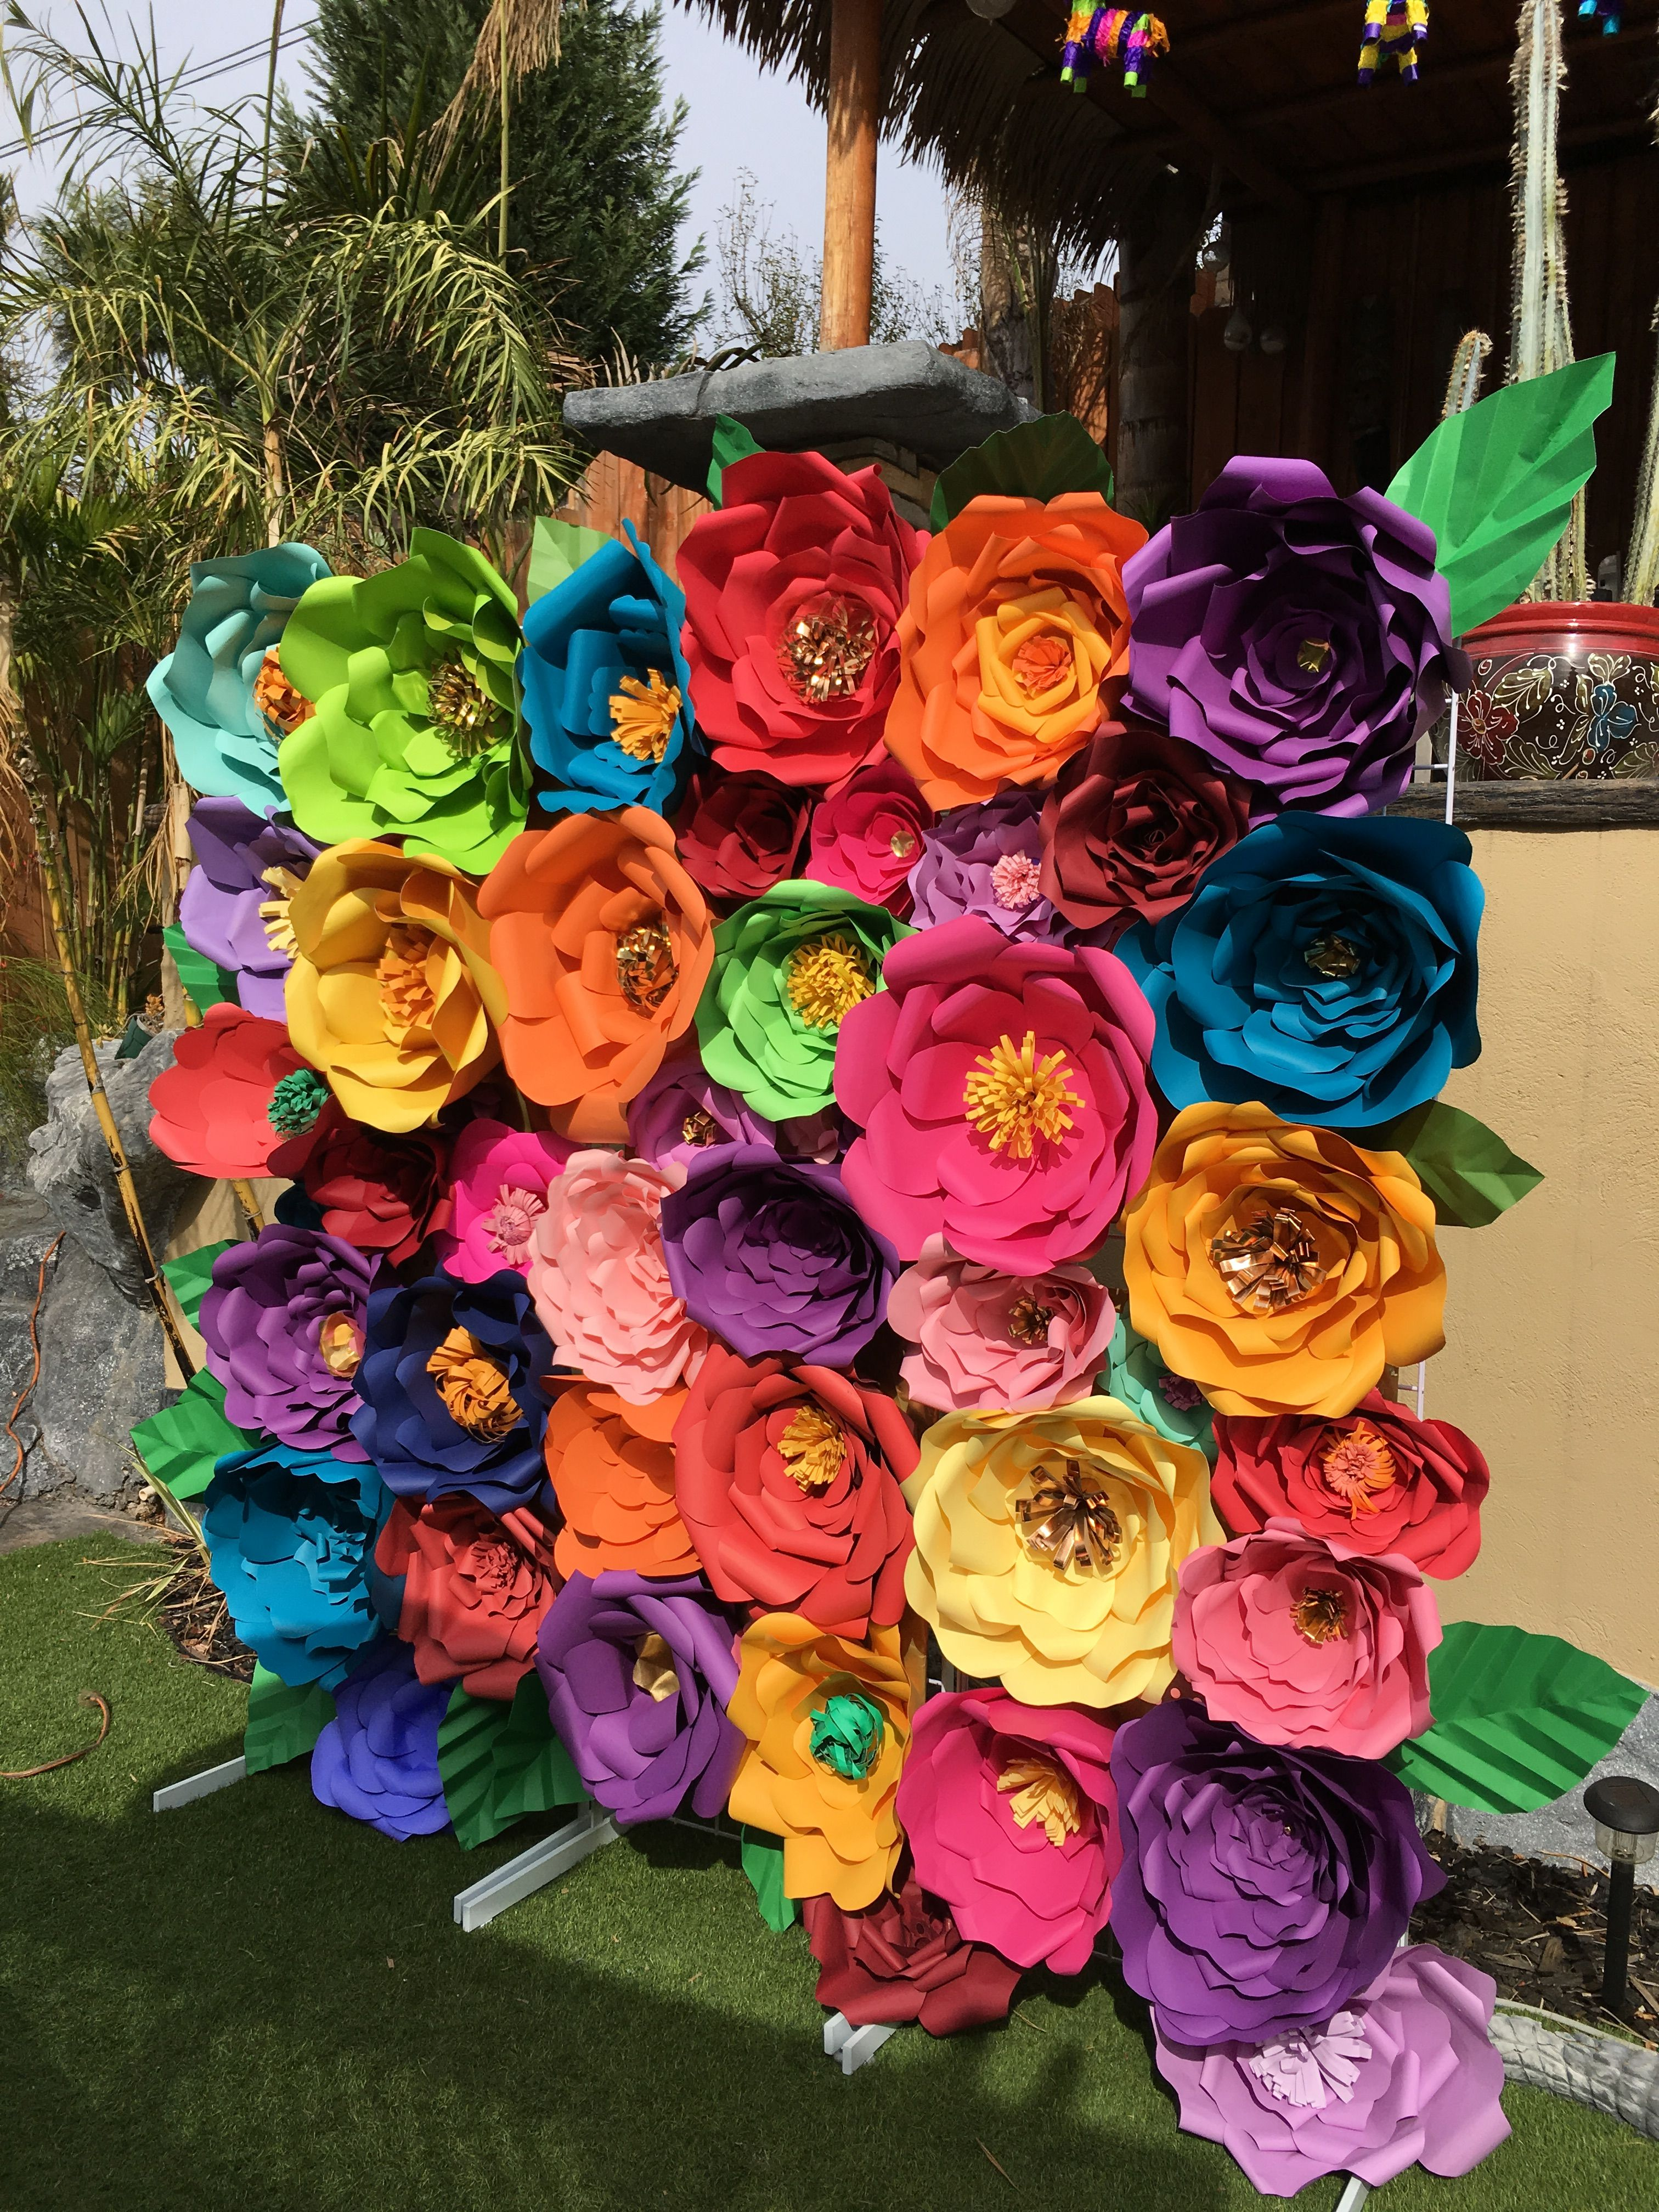 6X6 Feet Mexican Fiesta Colorful Paper Flowers Backdrop Photo Booth